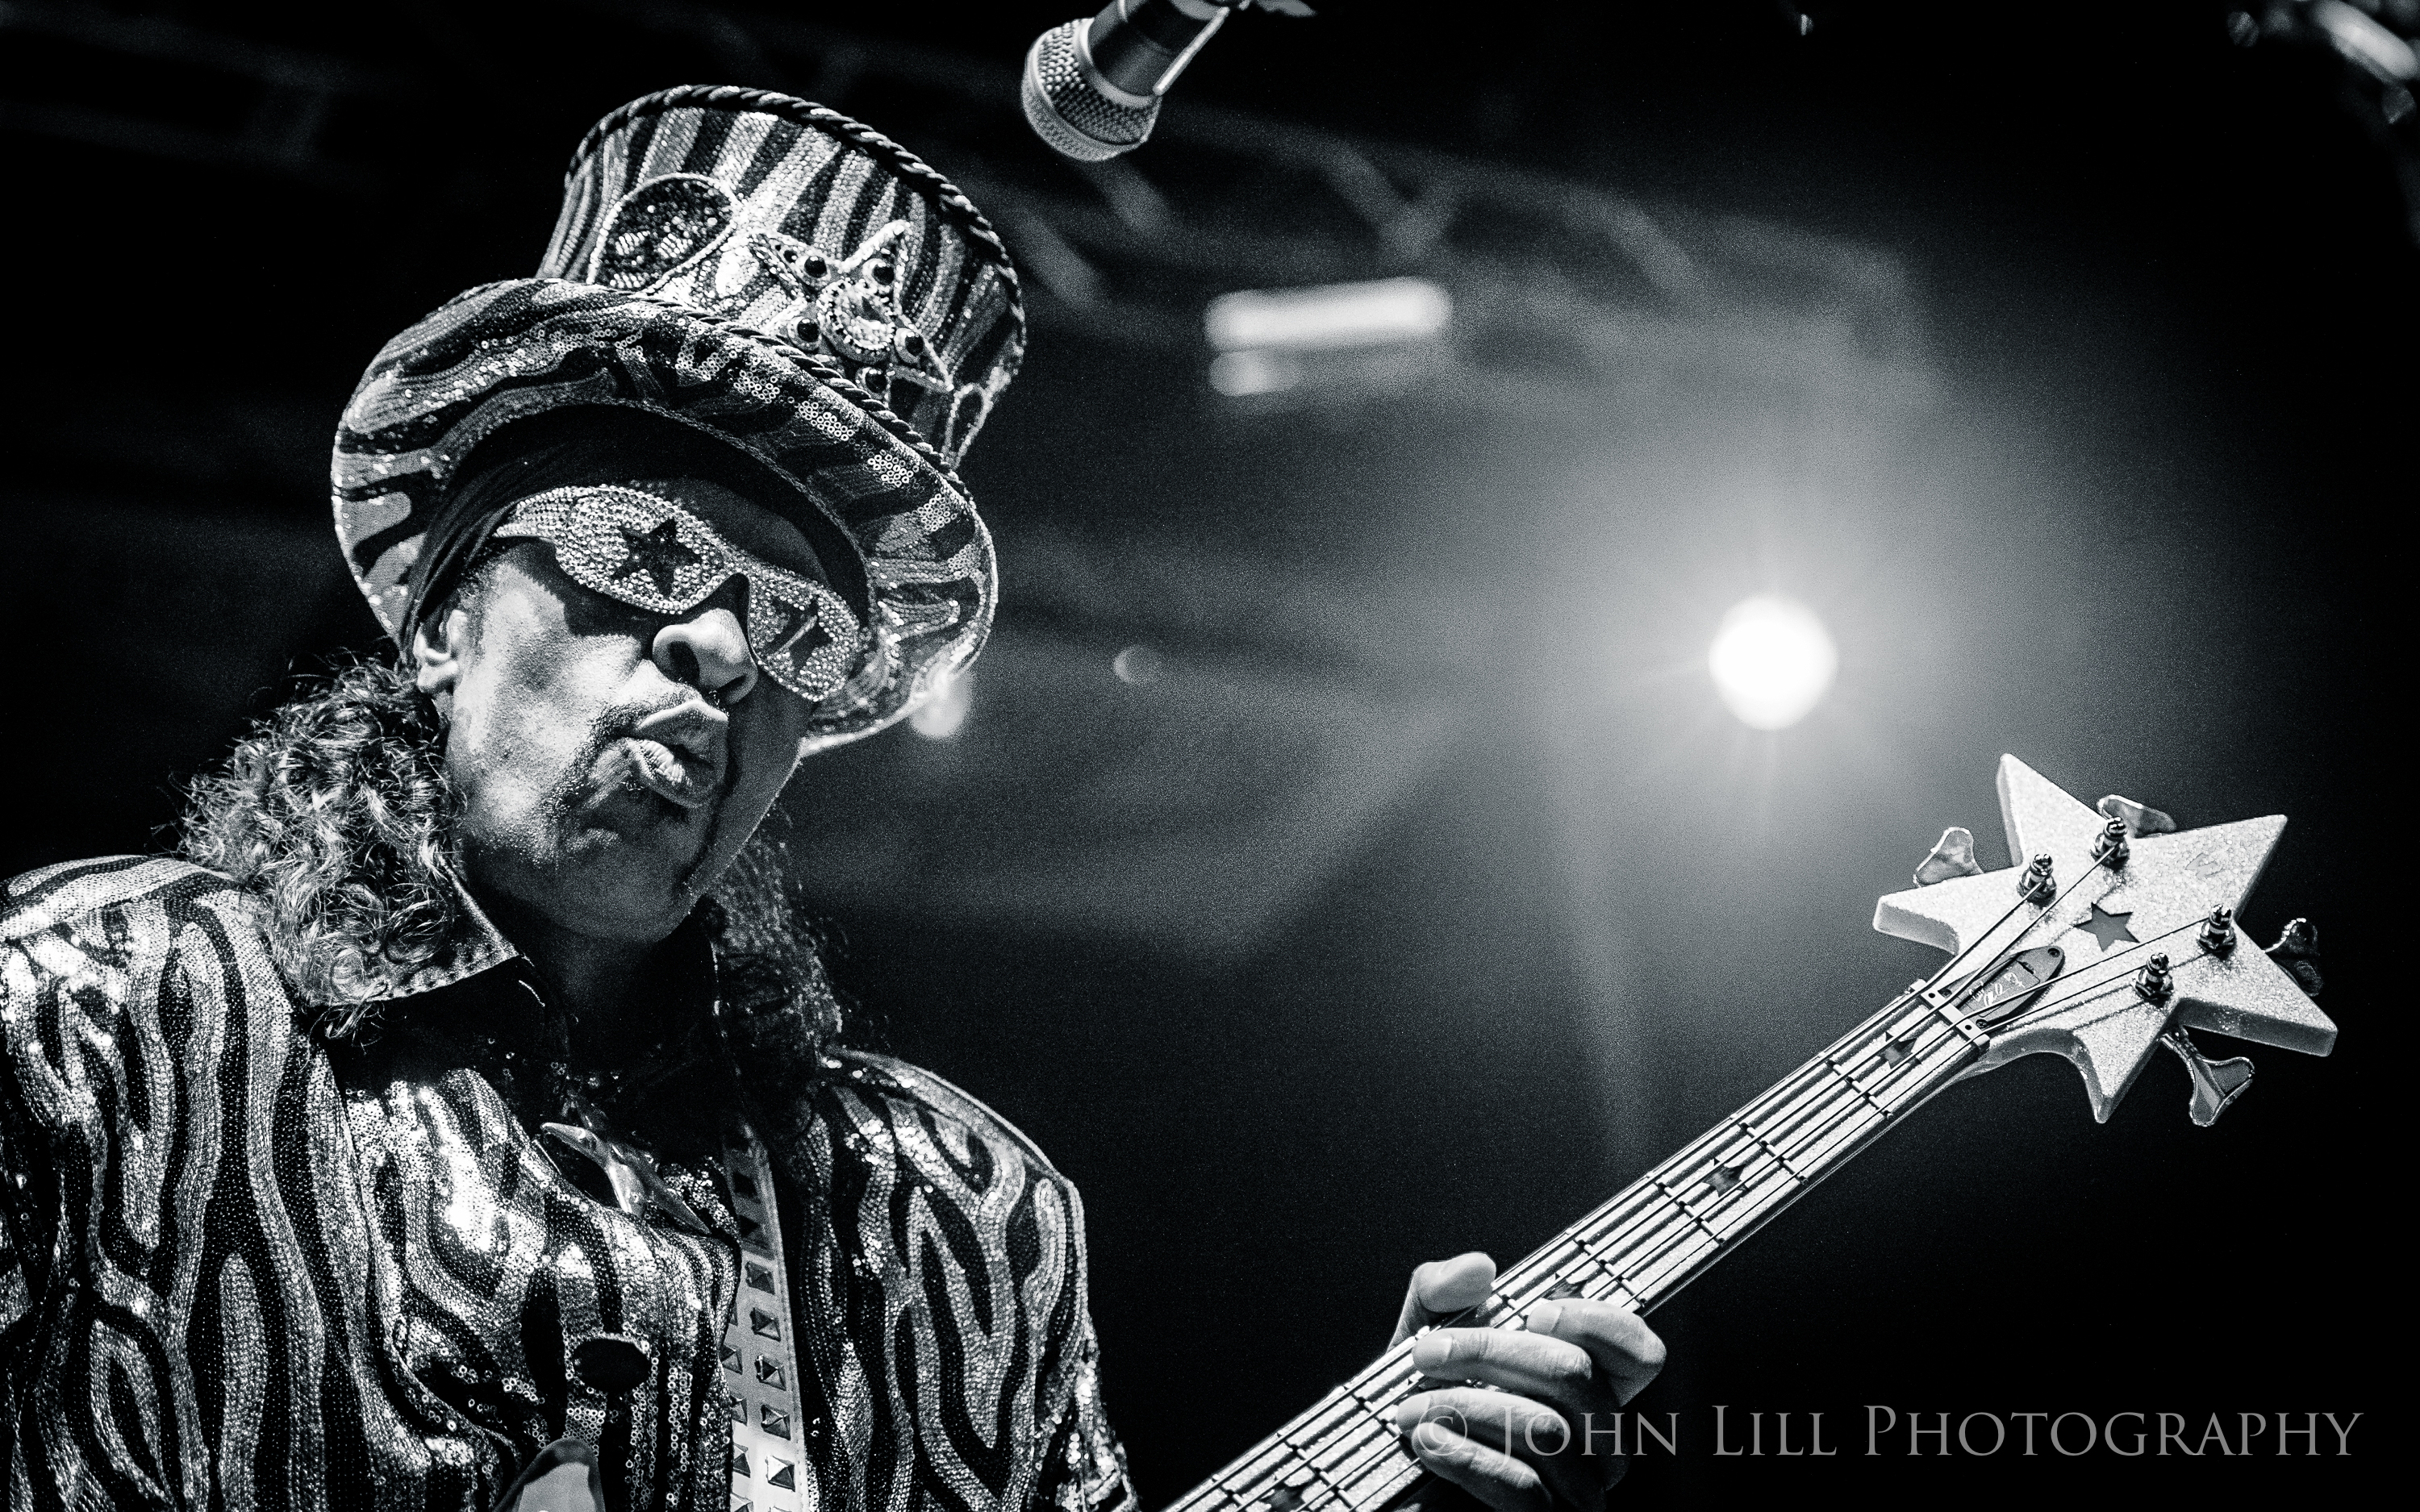 Legendary funk bassist Bootsy Collins performs at Bumbershoot. (Photo: John Lill)